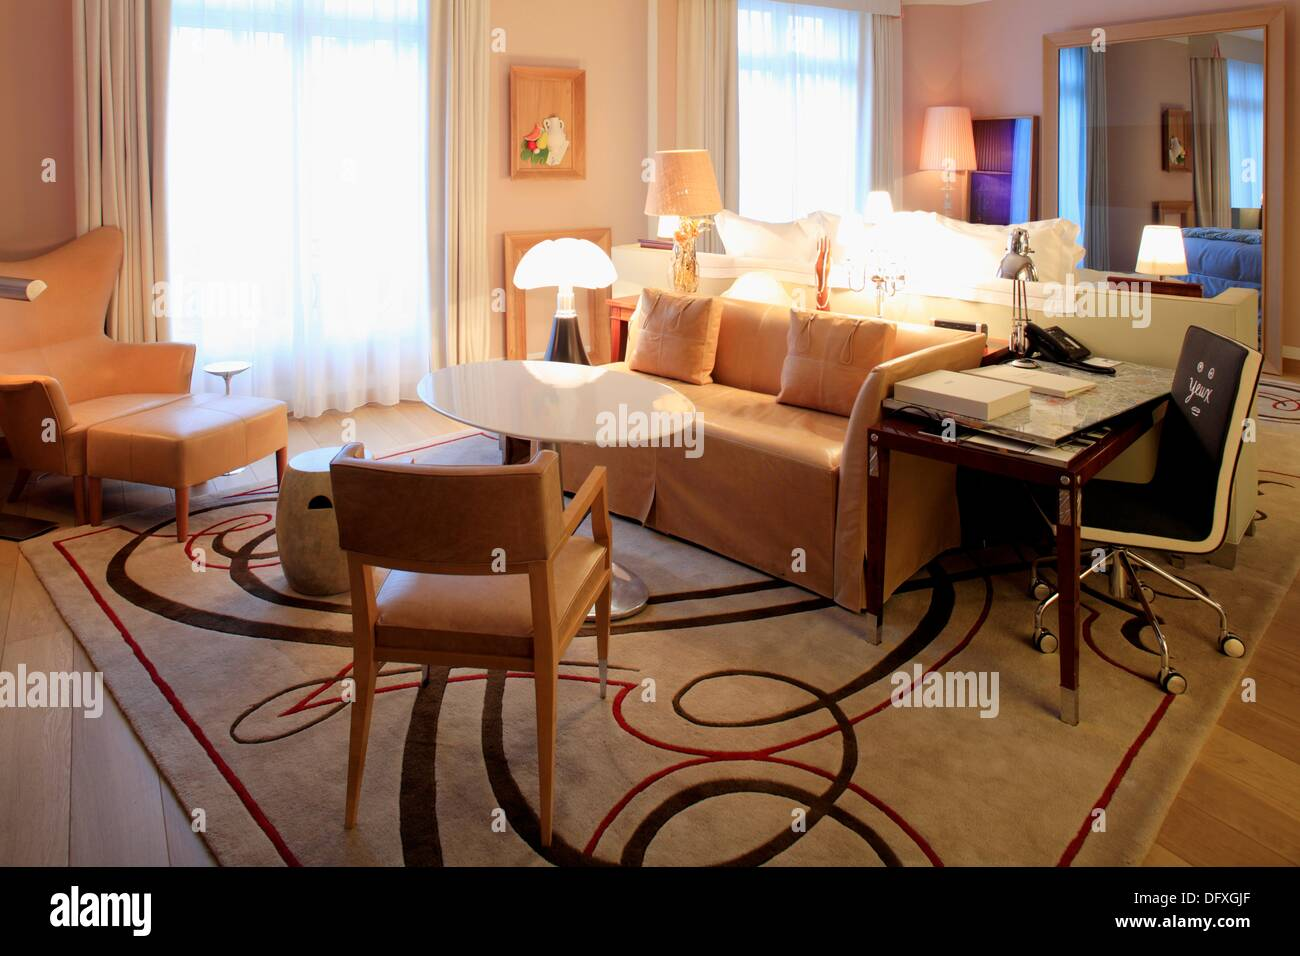 deluxe collection rooms designed by philippe starck in hotel le royal stock photo royalty free. Black Bedroom Furniture Sets. Home Design Ideas